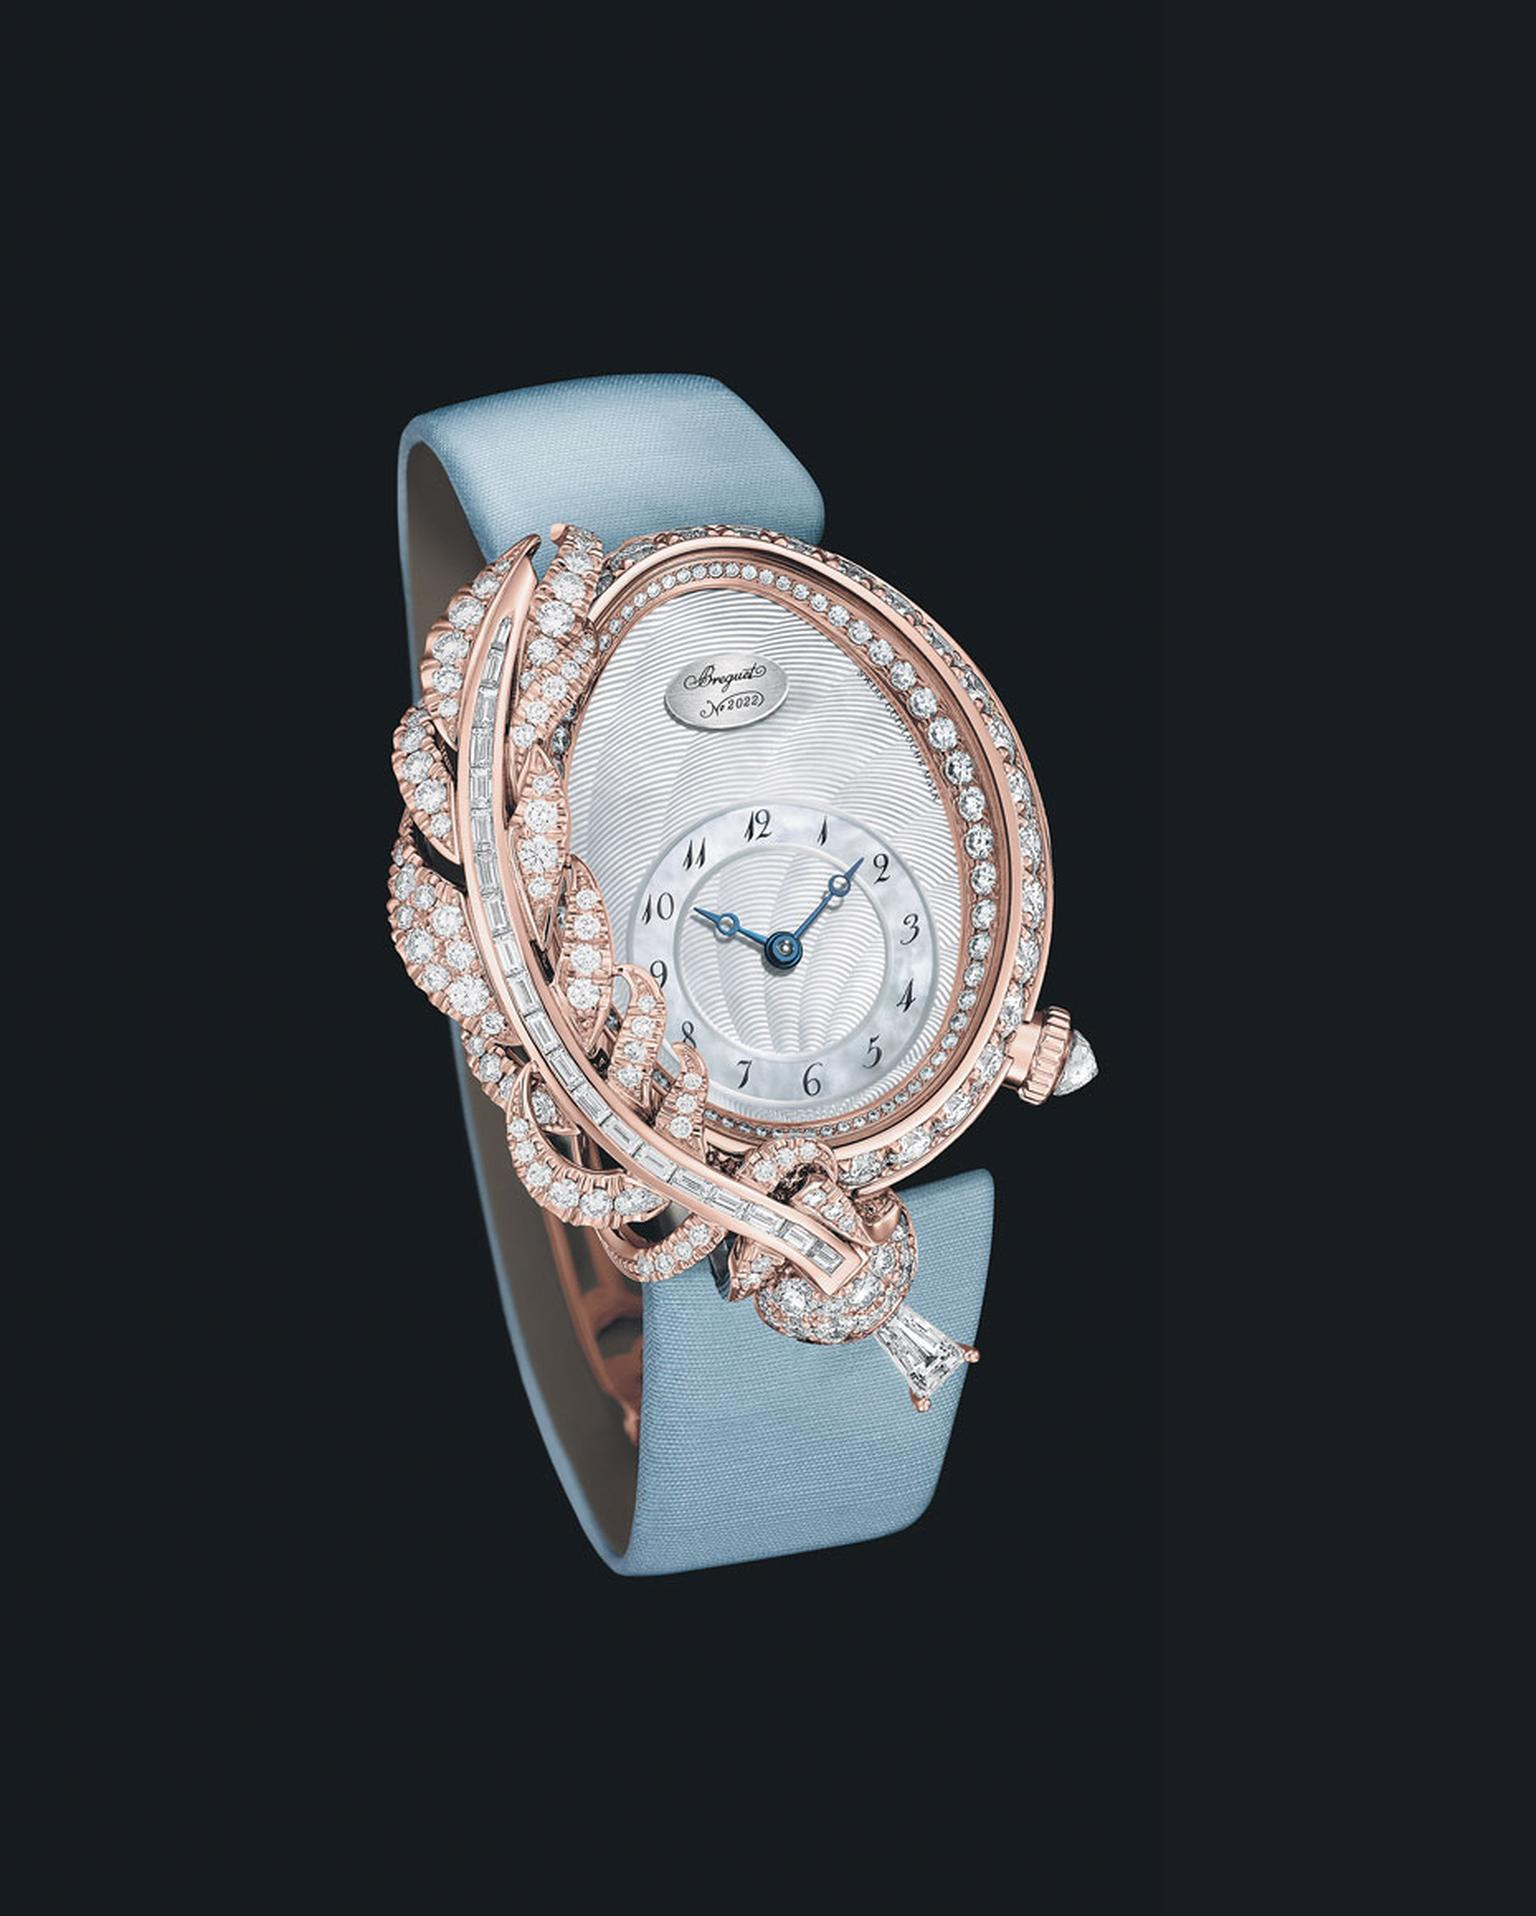 Breguet watches Rêve de Plume captures the imperial style of Queen Marie-Antoinette's court to perfection. The oval-shaped, pink gold case houses a precision Breguet automatic movement.